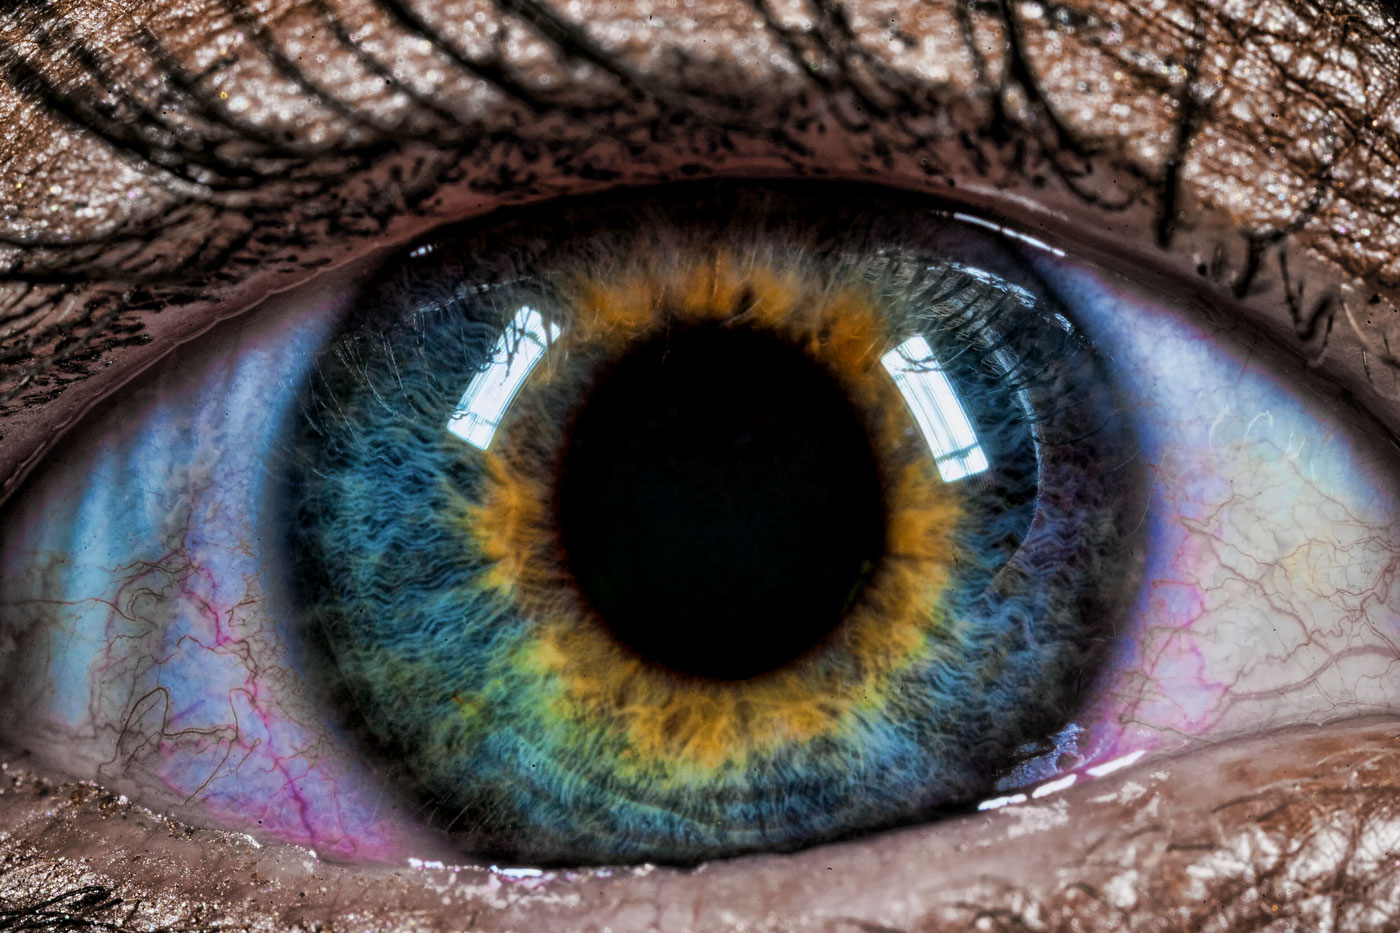 Alexander suffered from heterochromia iridum that one eye was was blue and the other was brown.